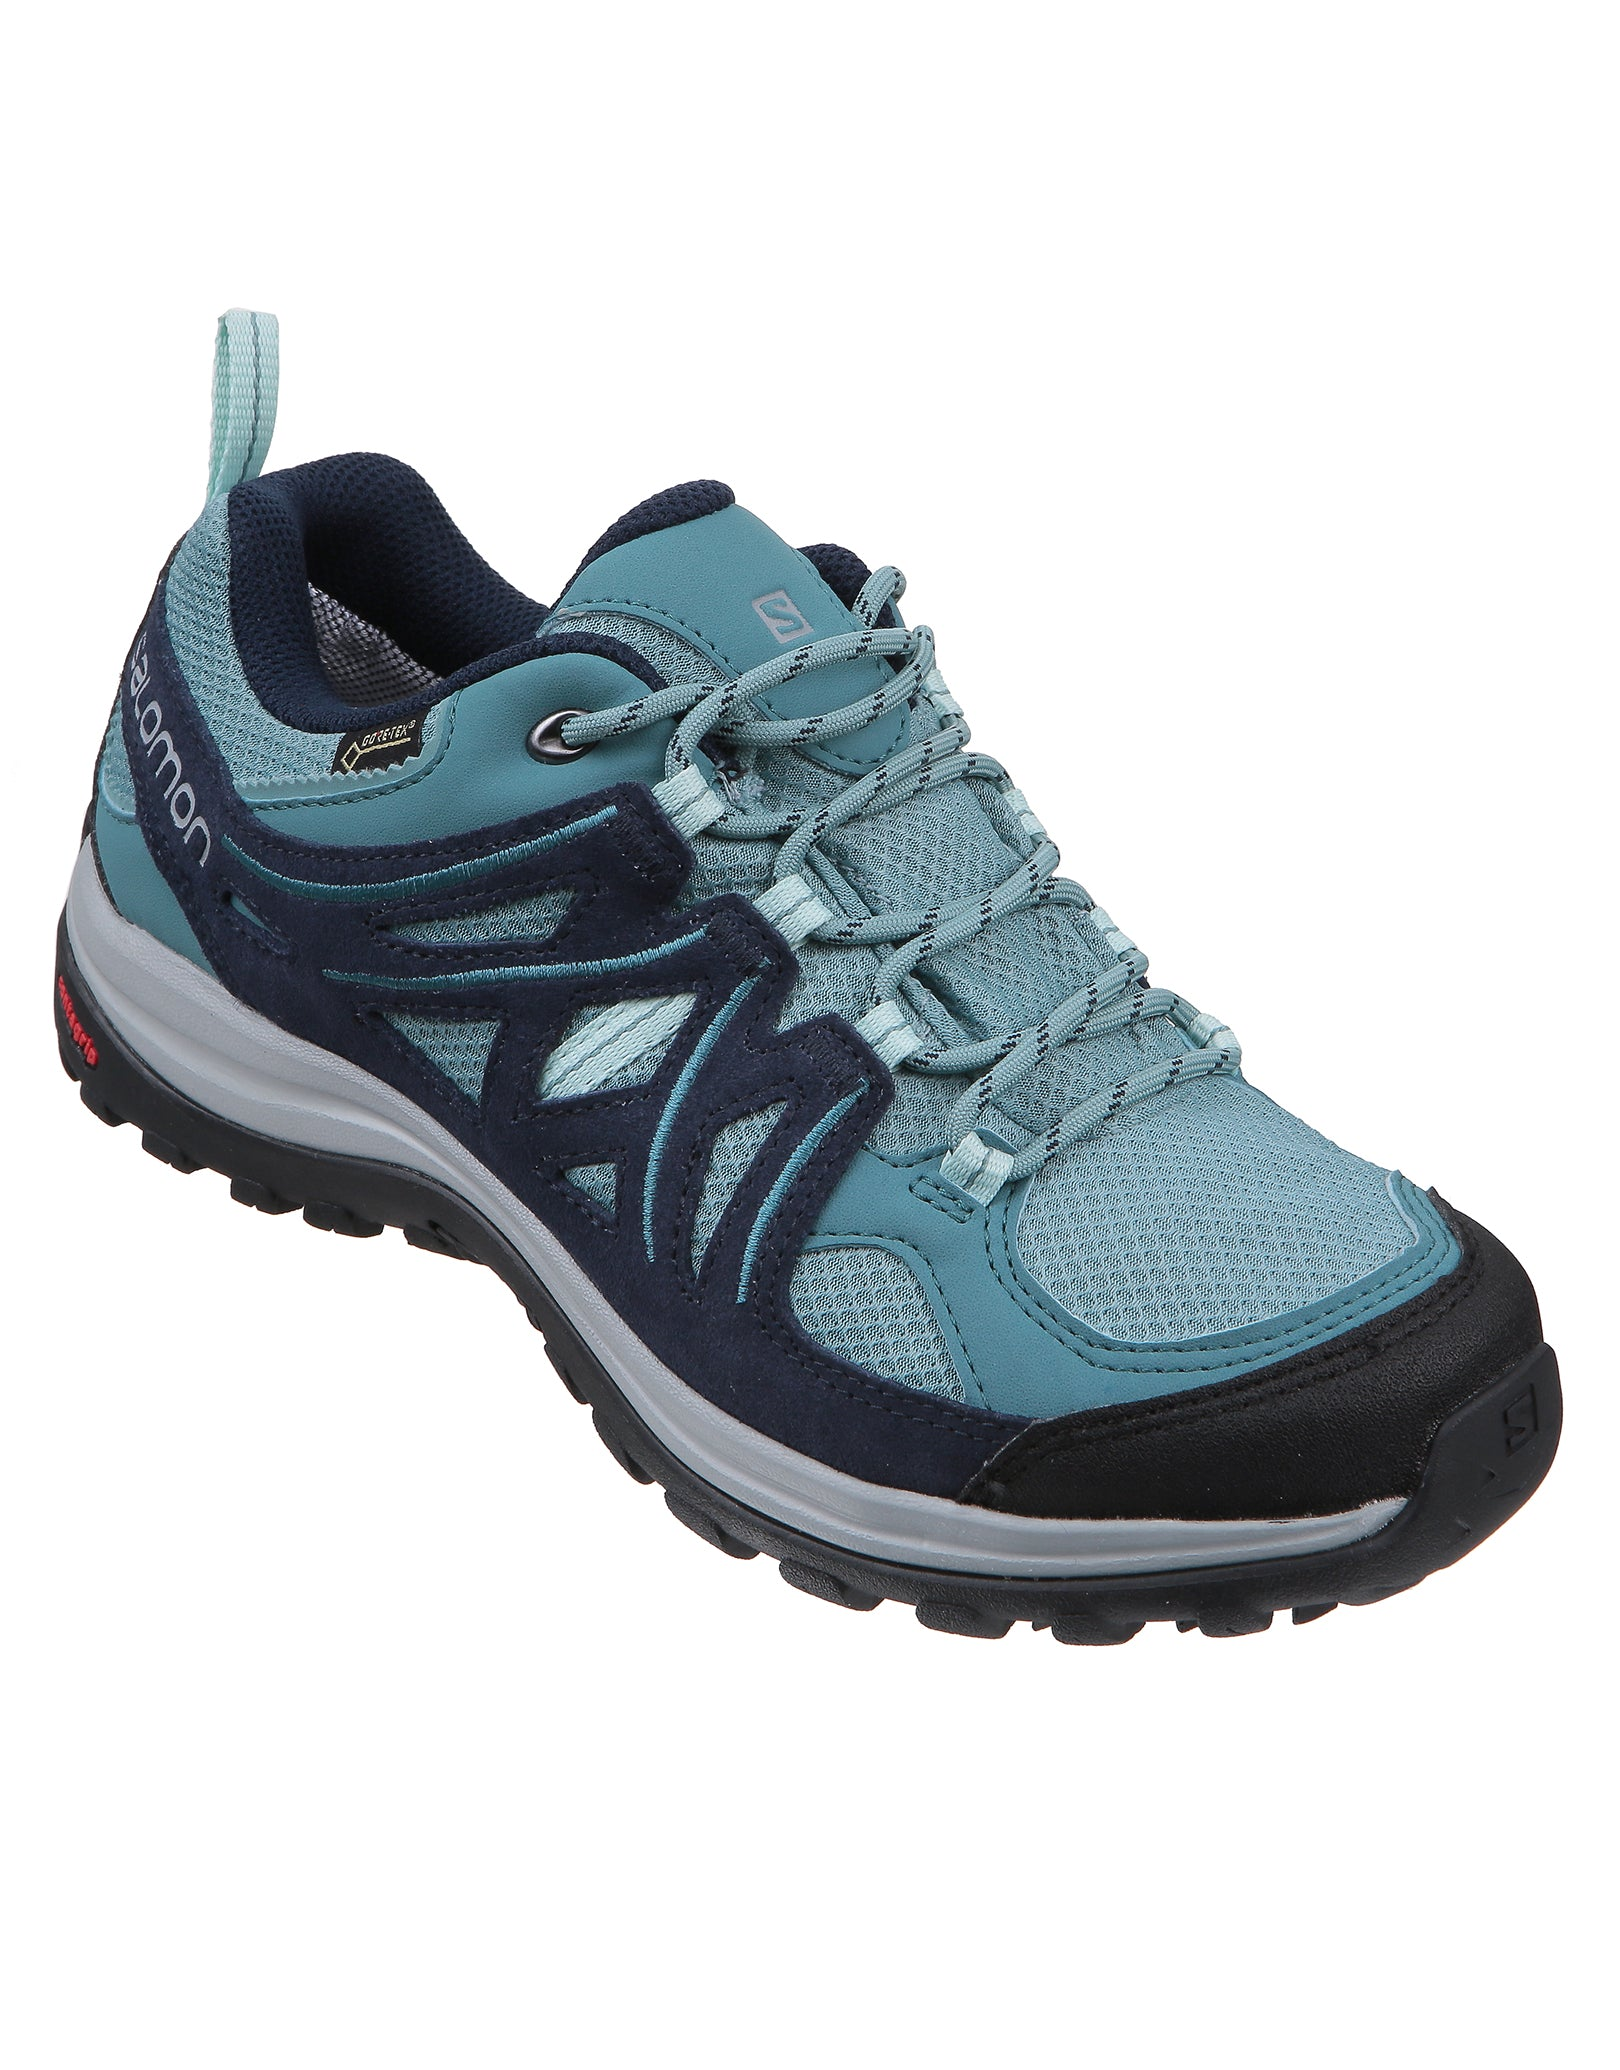 Womens Ellipse 2 GTX Trail Shoe - Trellis Navy